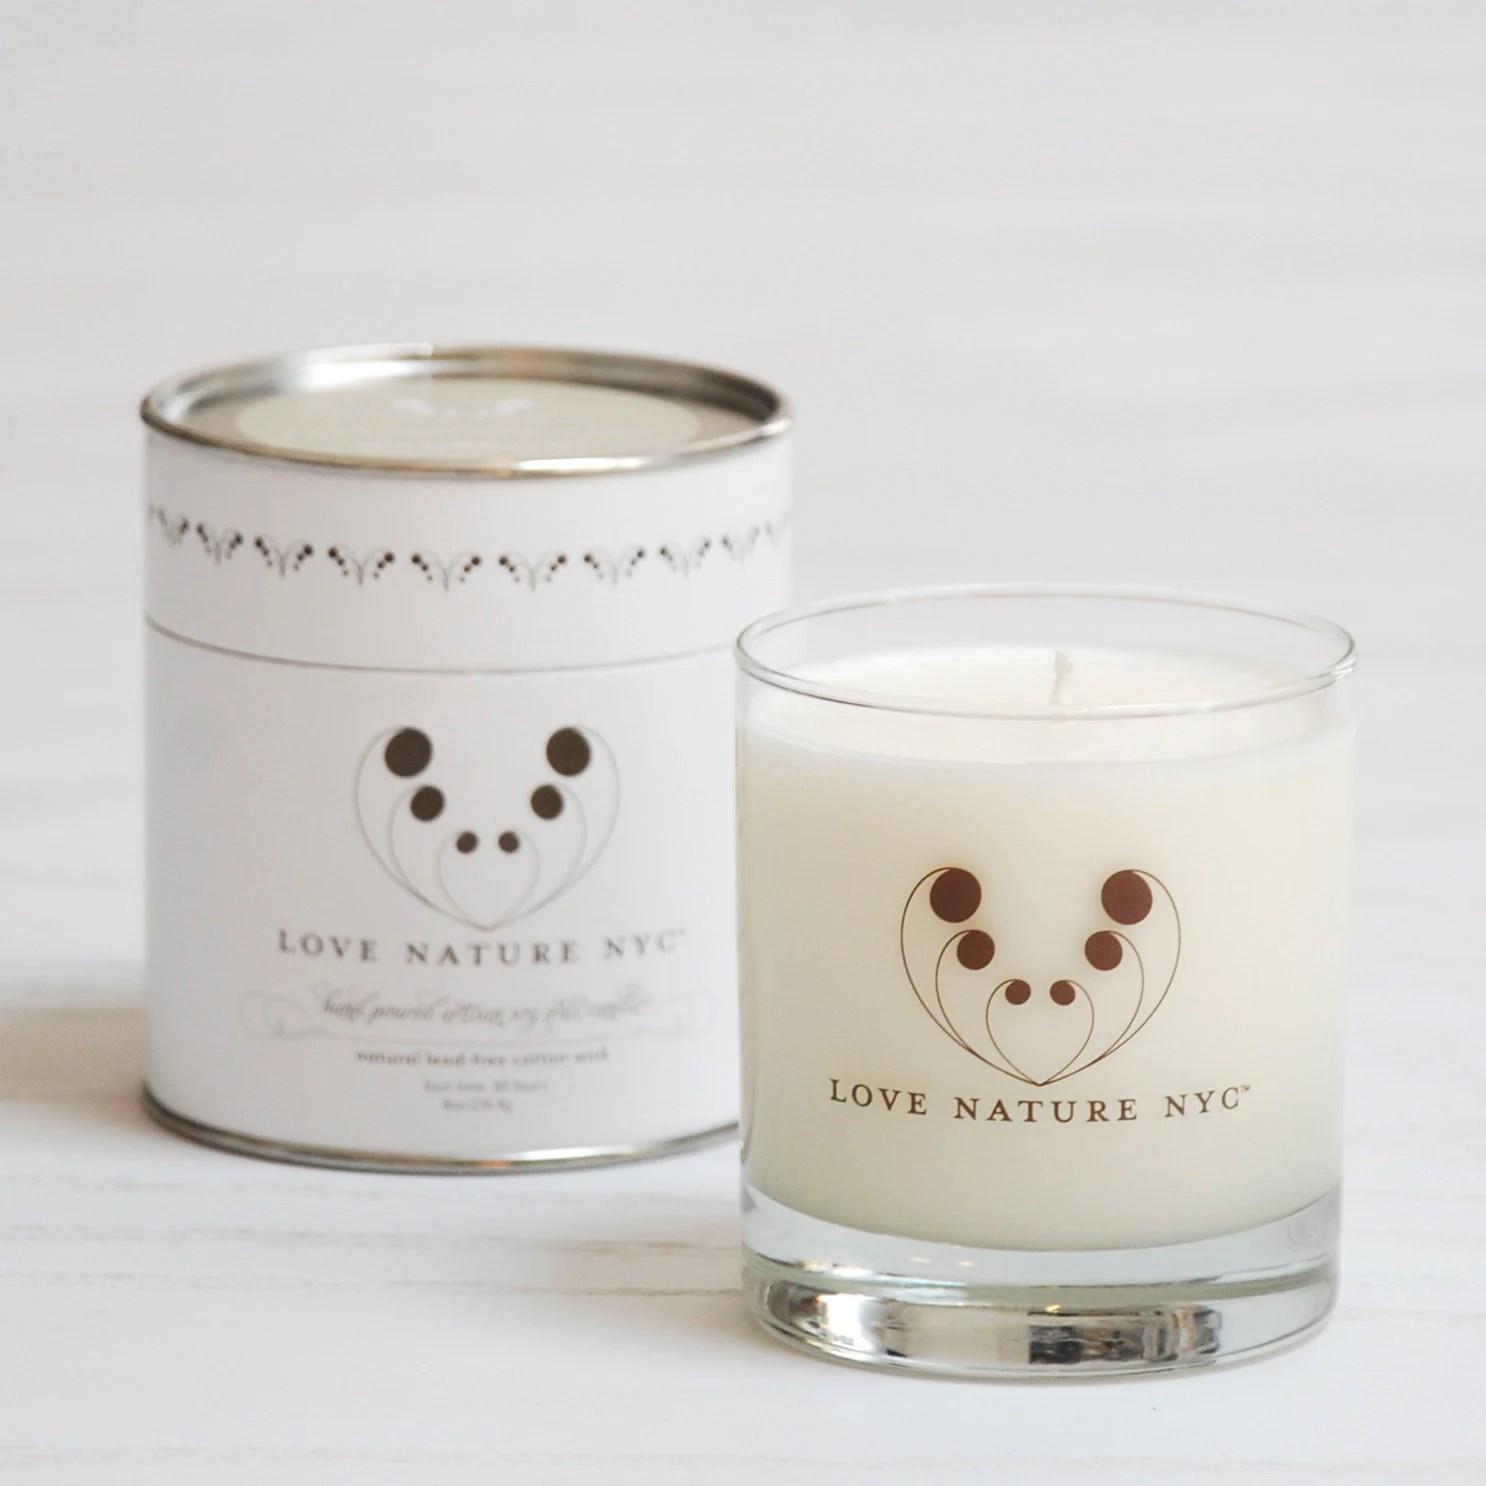 White Gardenia & Lily Soy Candle - LoveNatureNYC